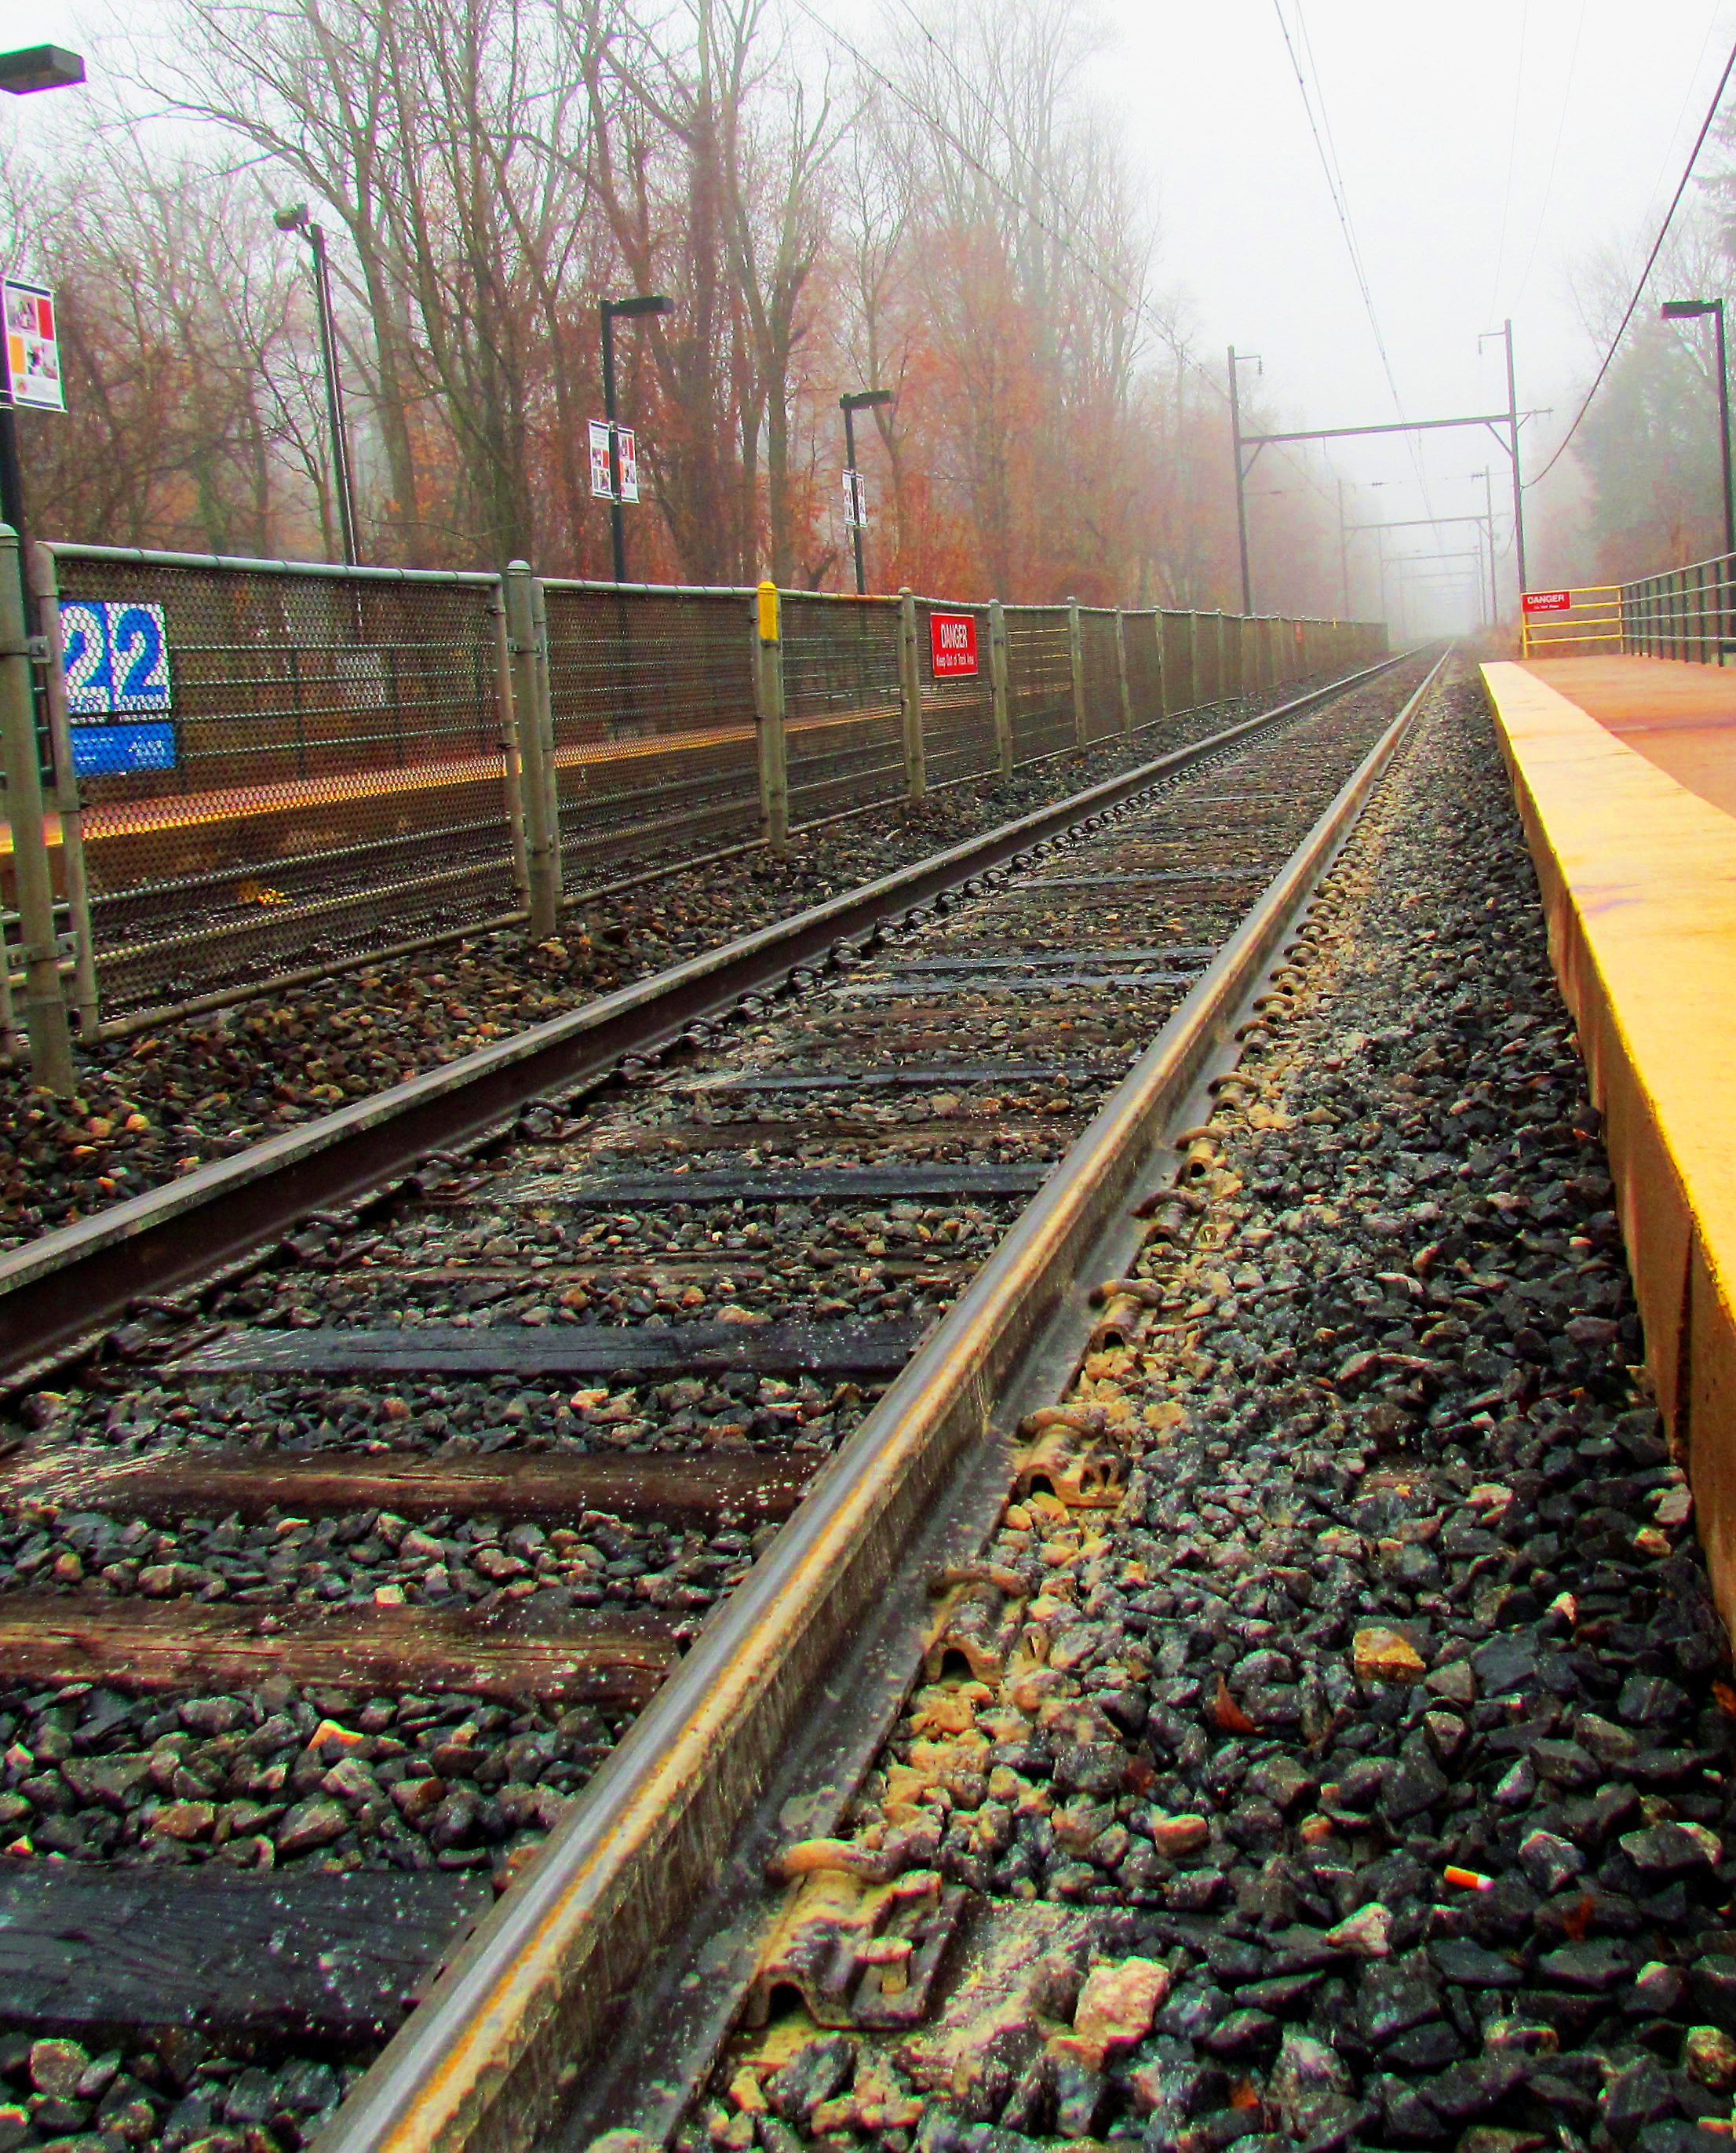 Commuter Rail Line Stop & Tracks